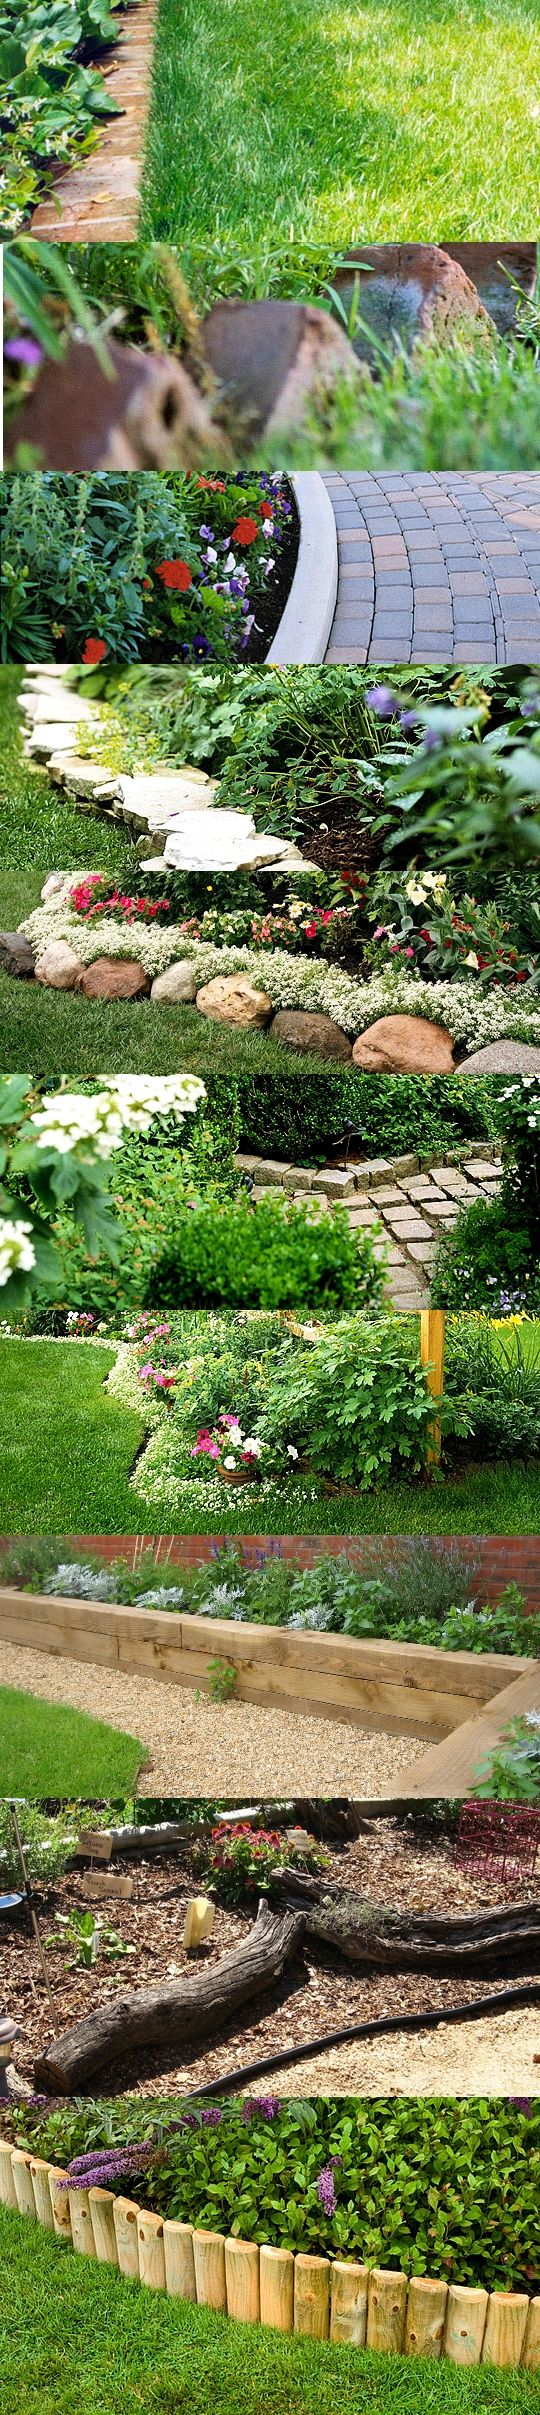 Garden bed borders edging ideas for vegetable and flower for Garden border planting ideas